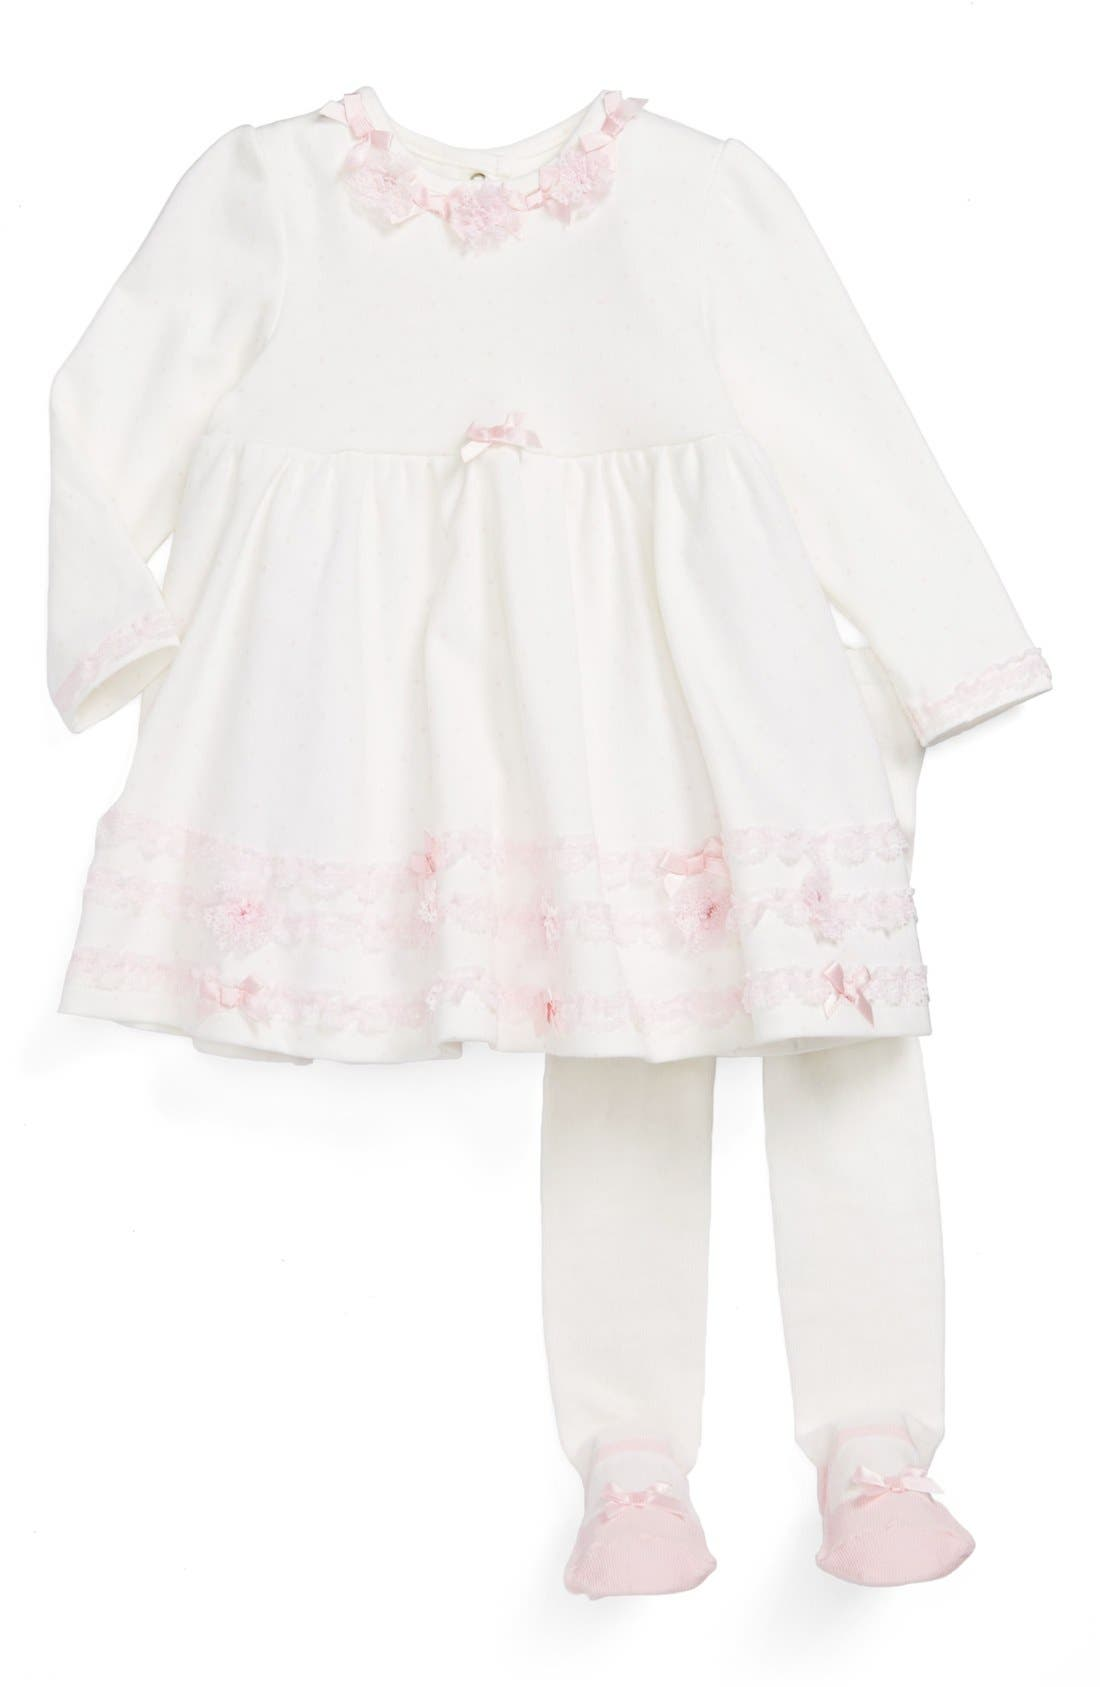 Main Image - Little Me Long Sleeve Lace Trim Dress & Footie Leggings (Baby Girls)